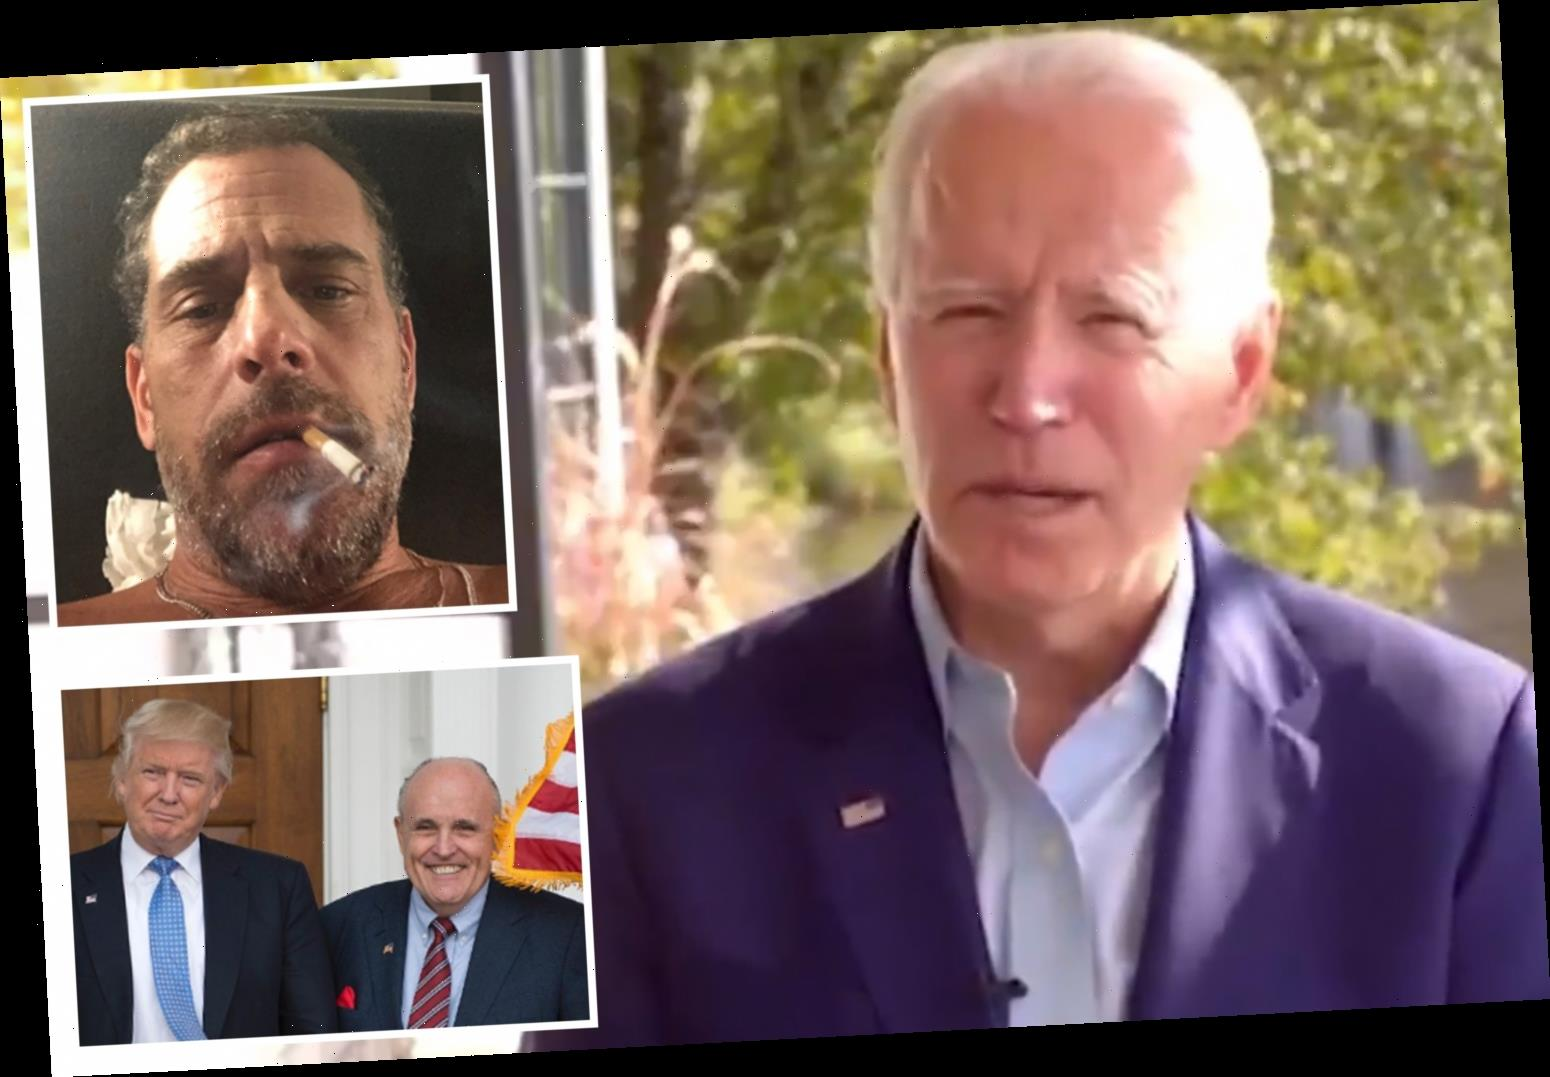 Joe Biden FINALLY responds to Hunter Biden laptop scandal and calls it a 'smear against his family' by Trump 'henchmen'